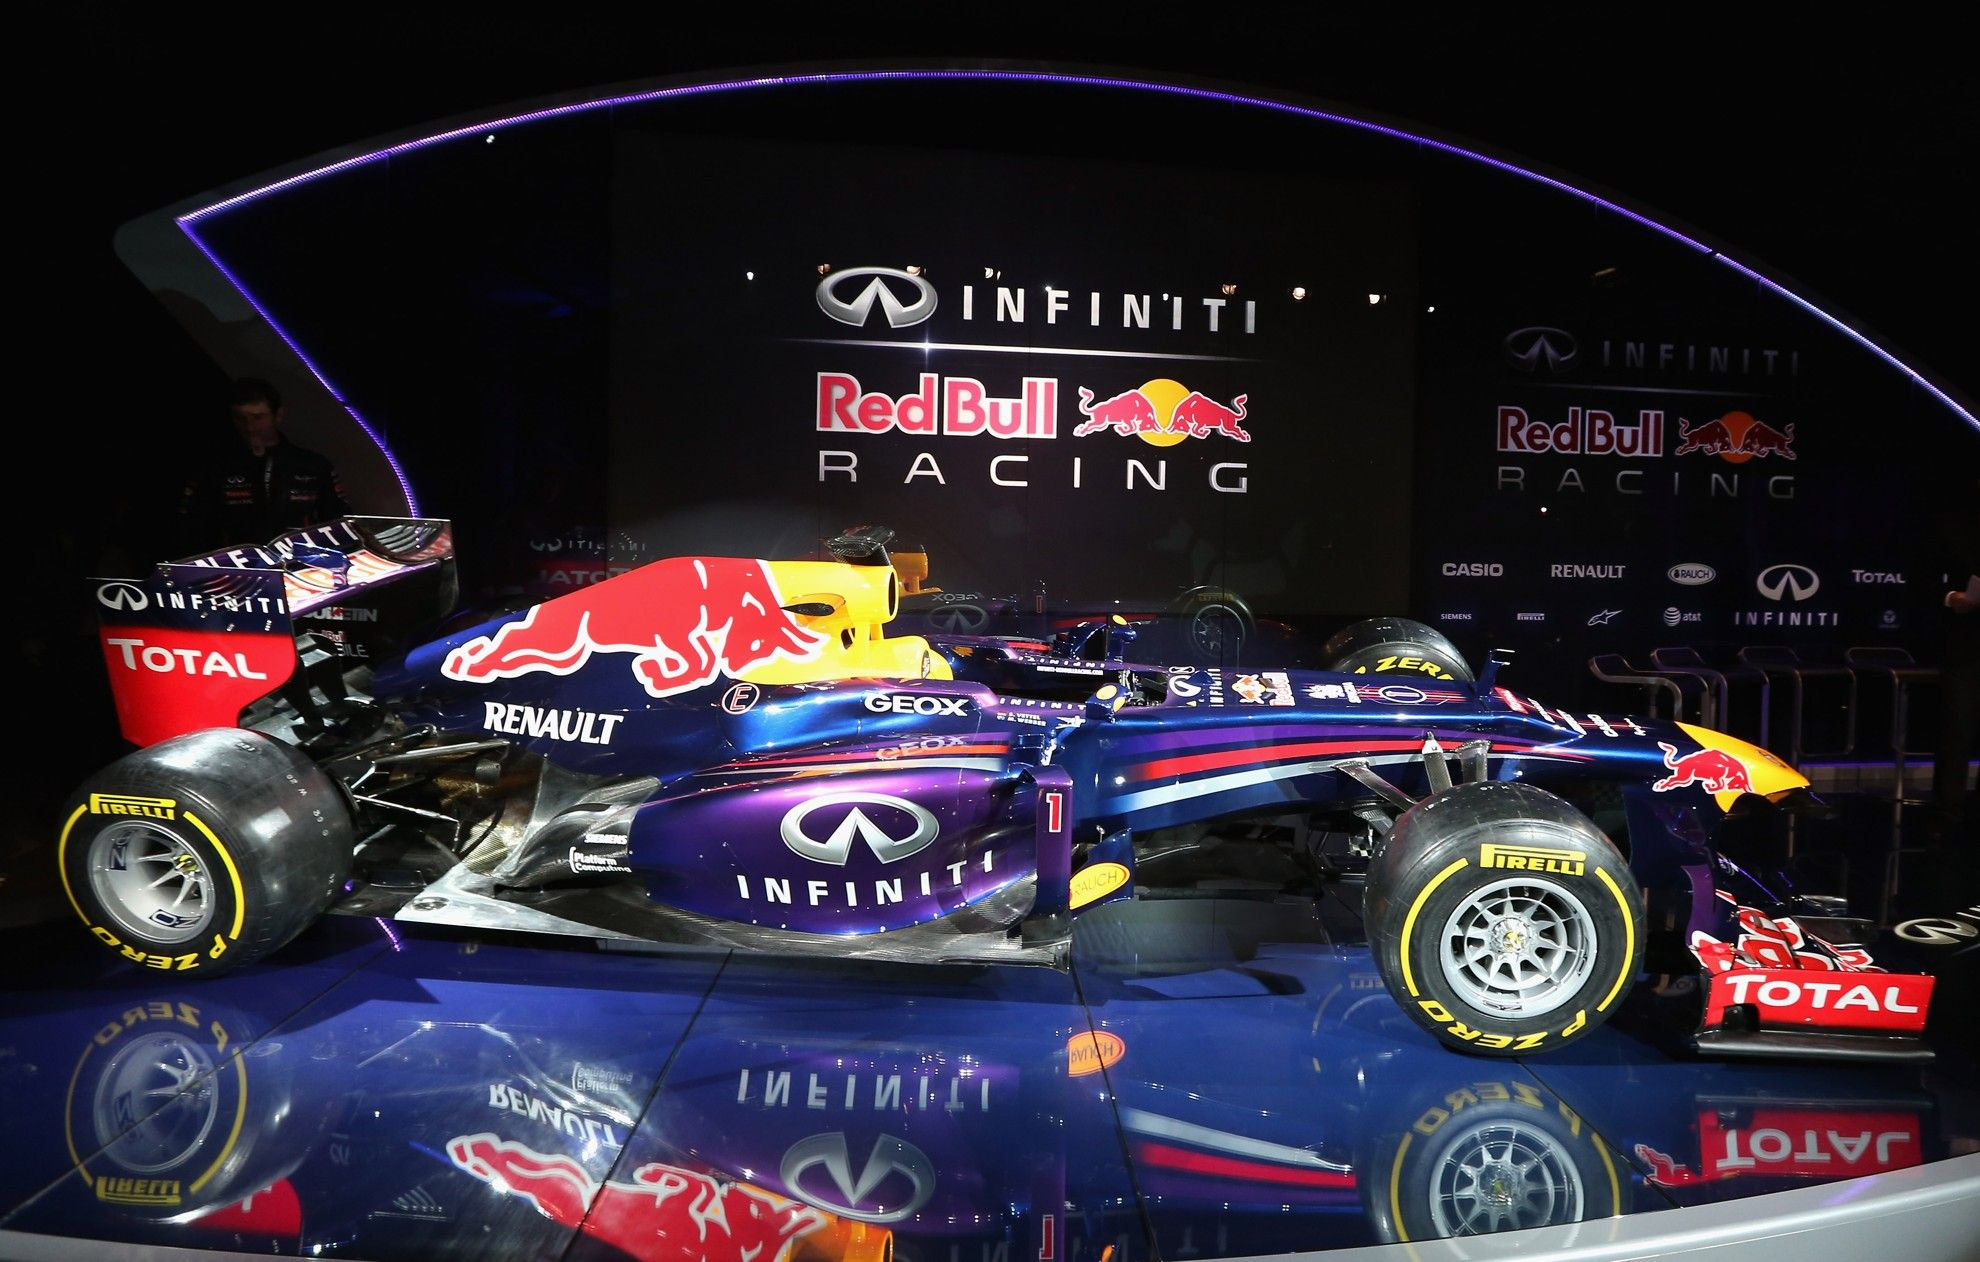 Infiniti red bull racing reveals the rb9 http www orlandoinfiniti com